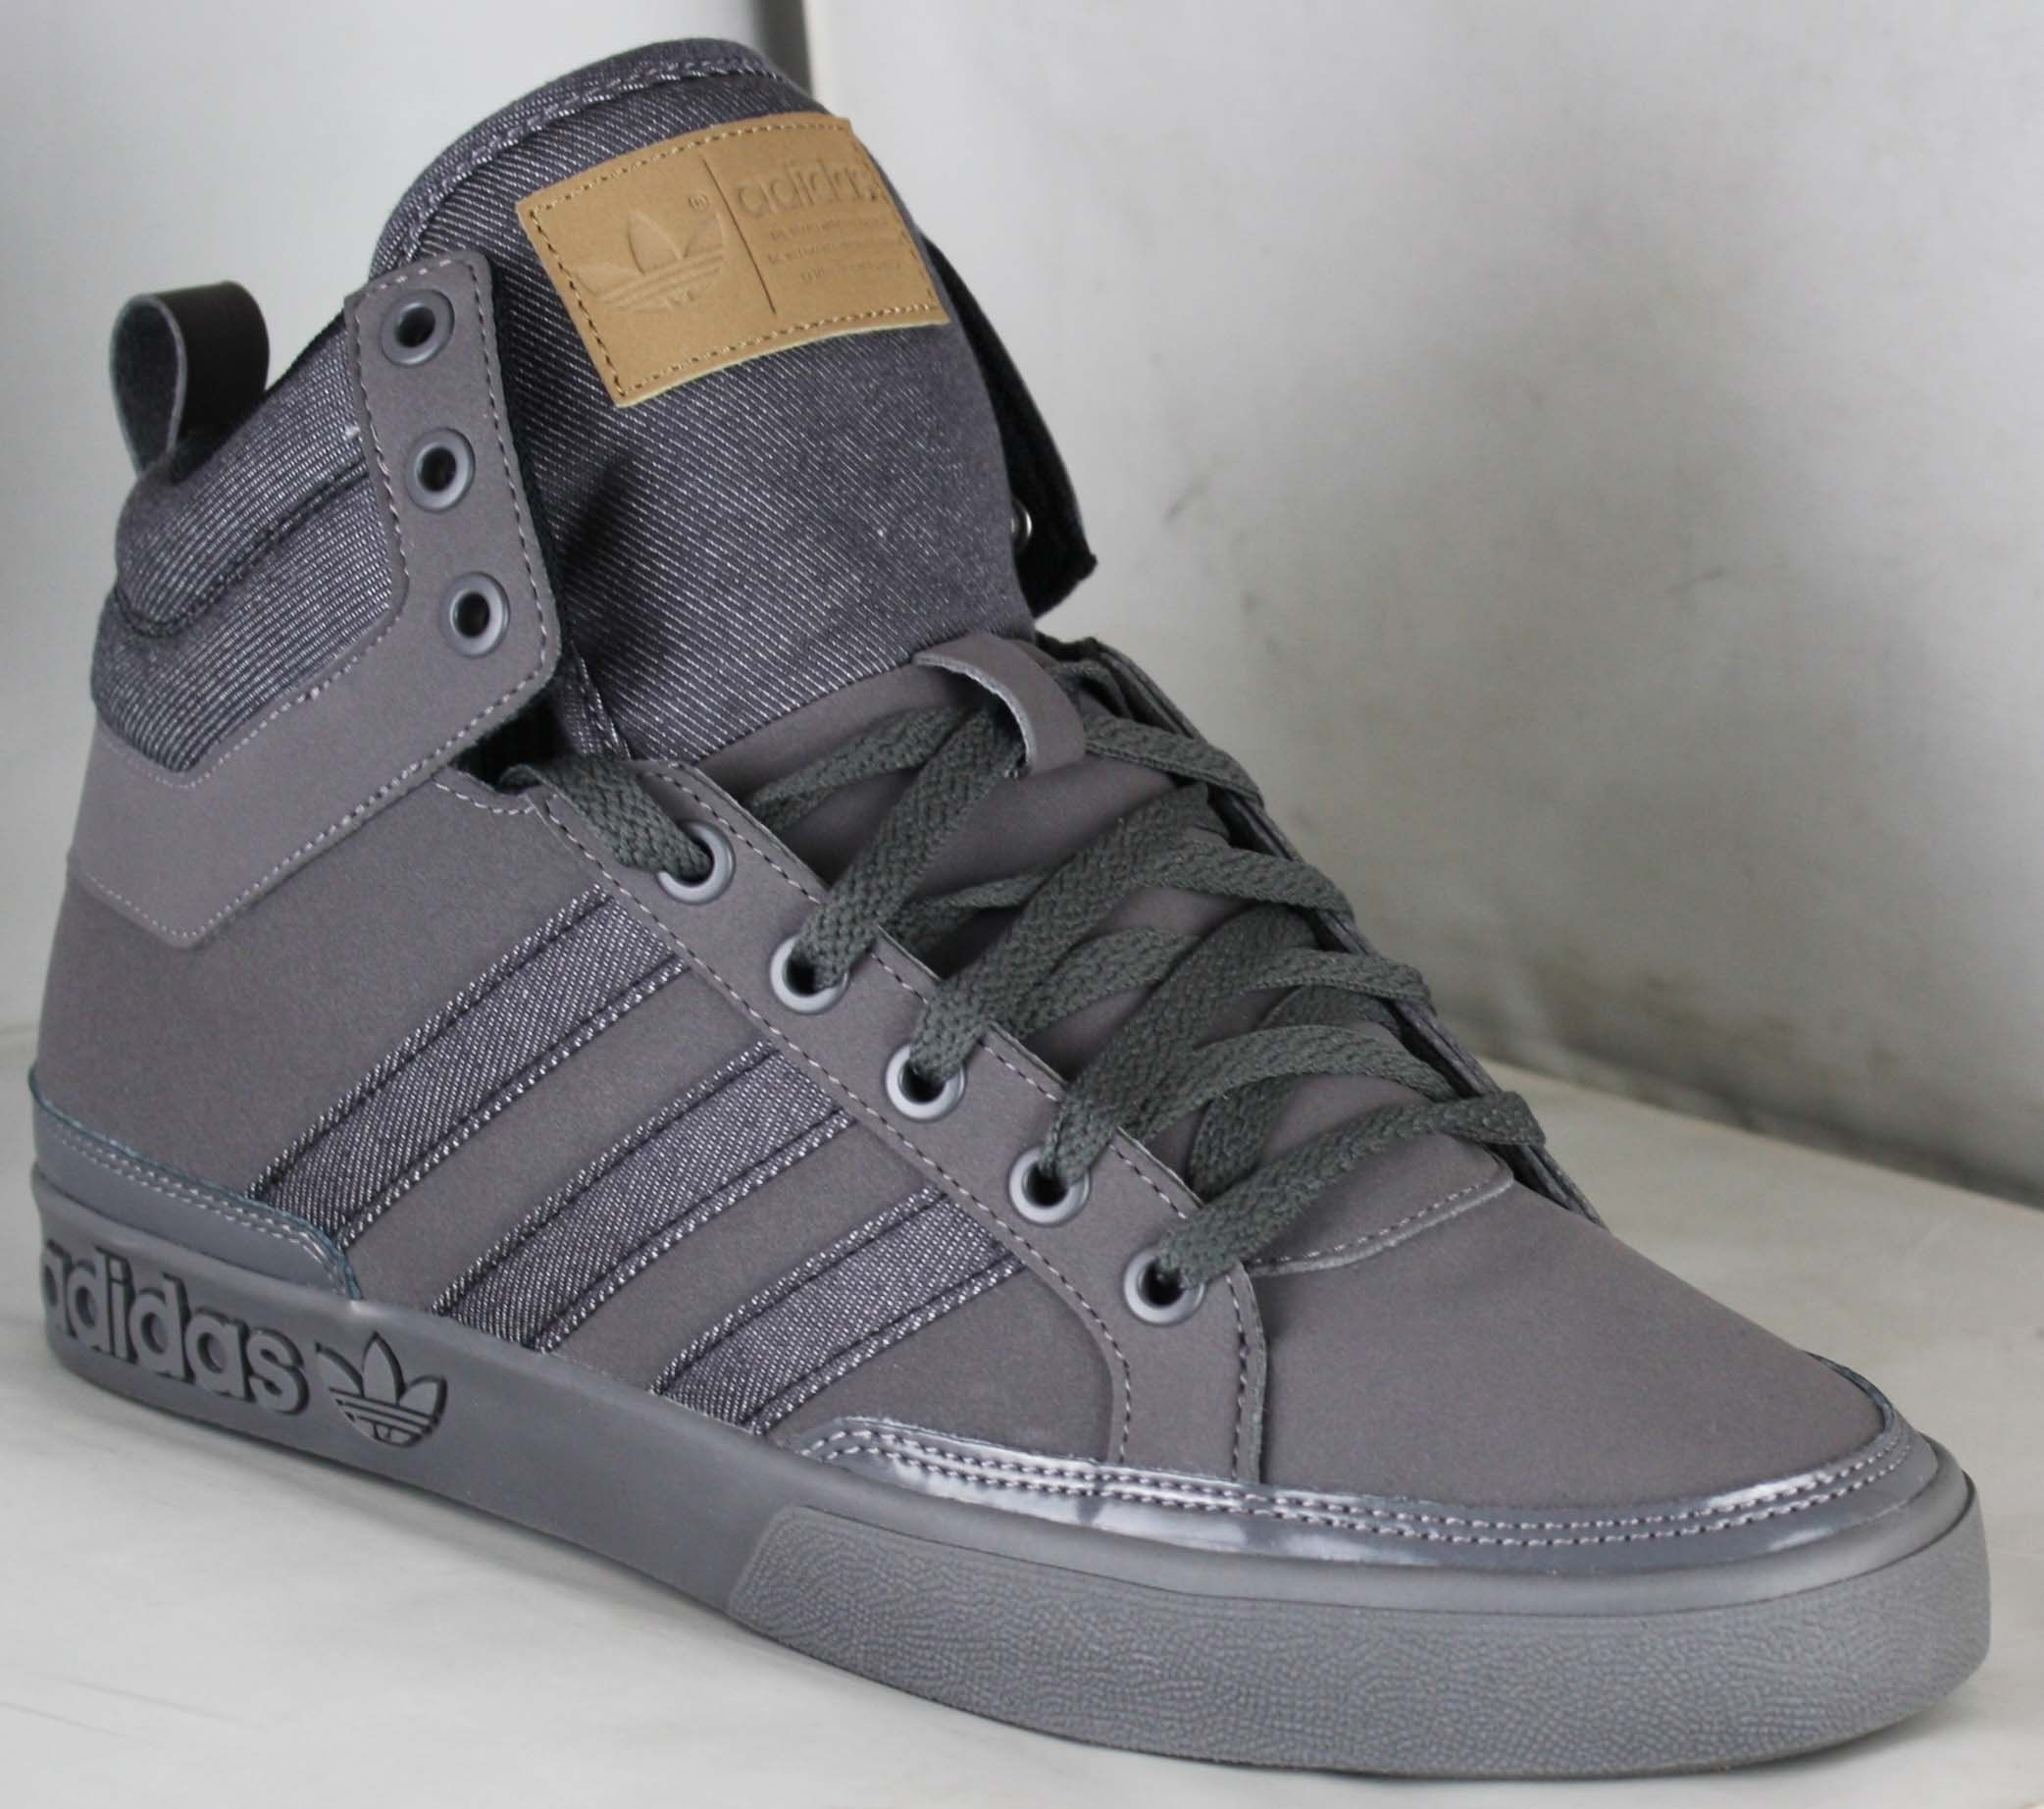 Adidas Originals Top Court Men's HI TOP TRAINER GREY (UK9